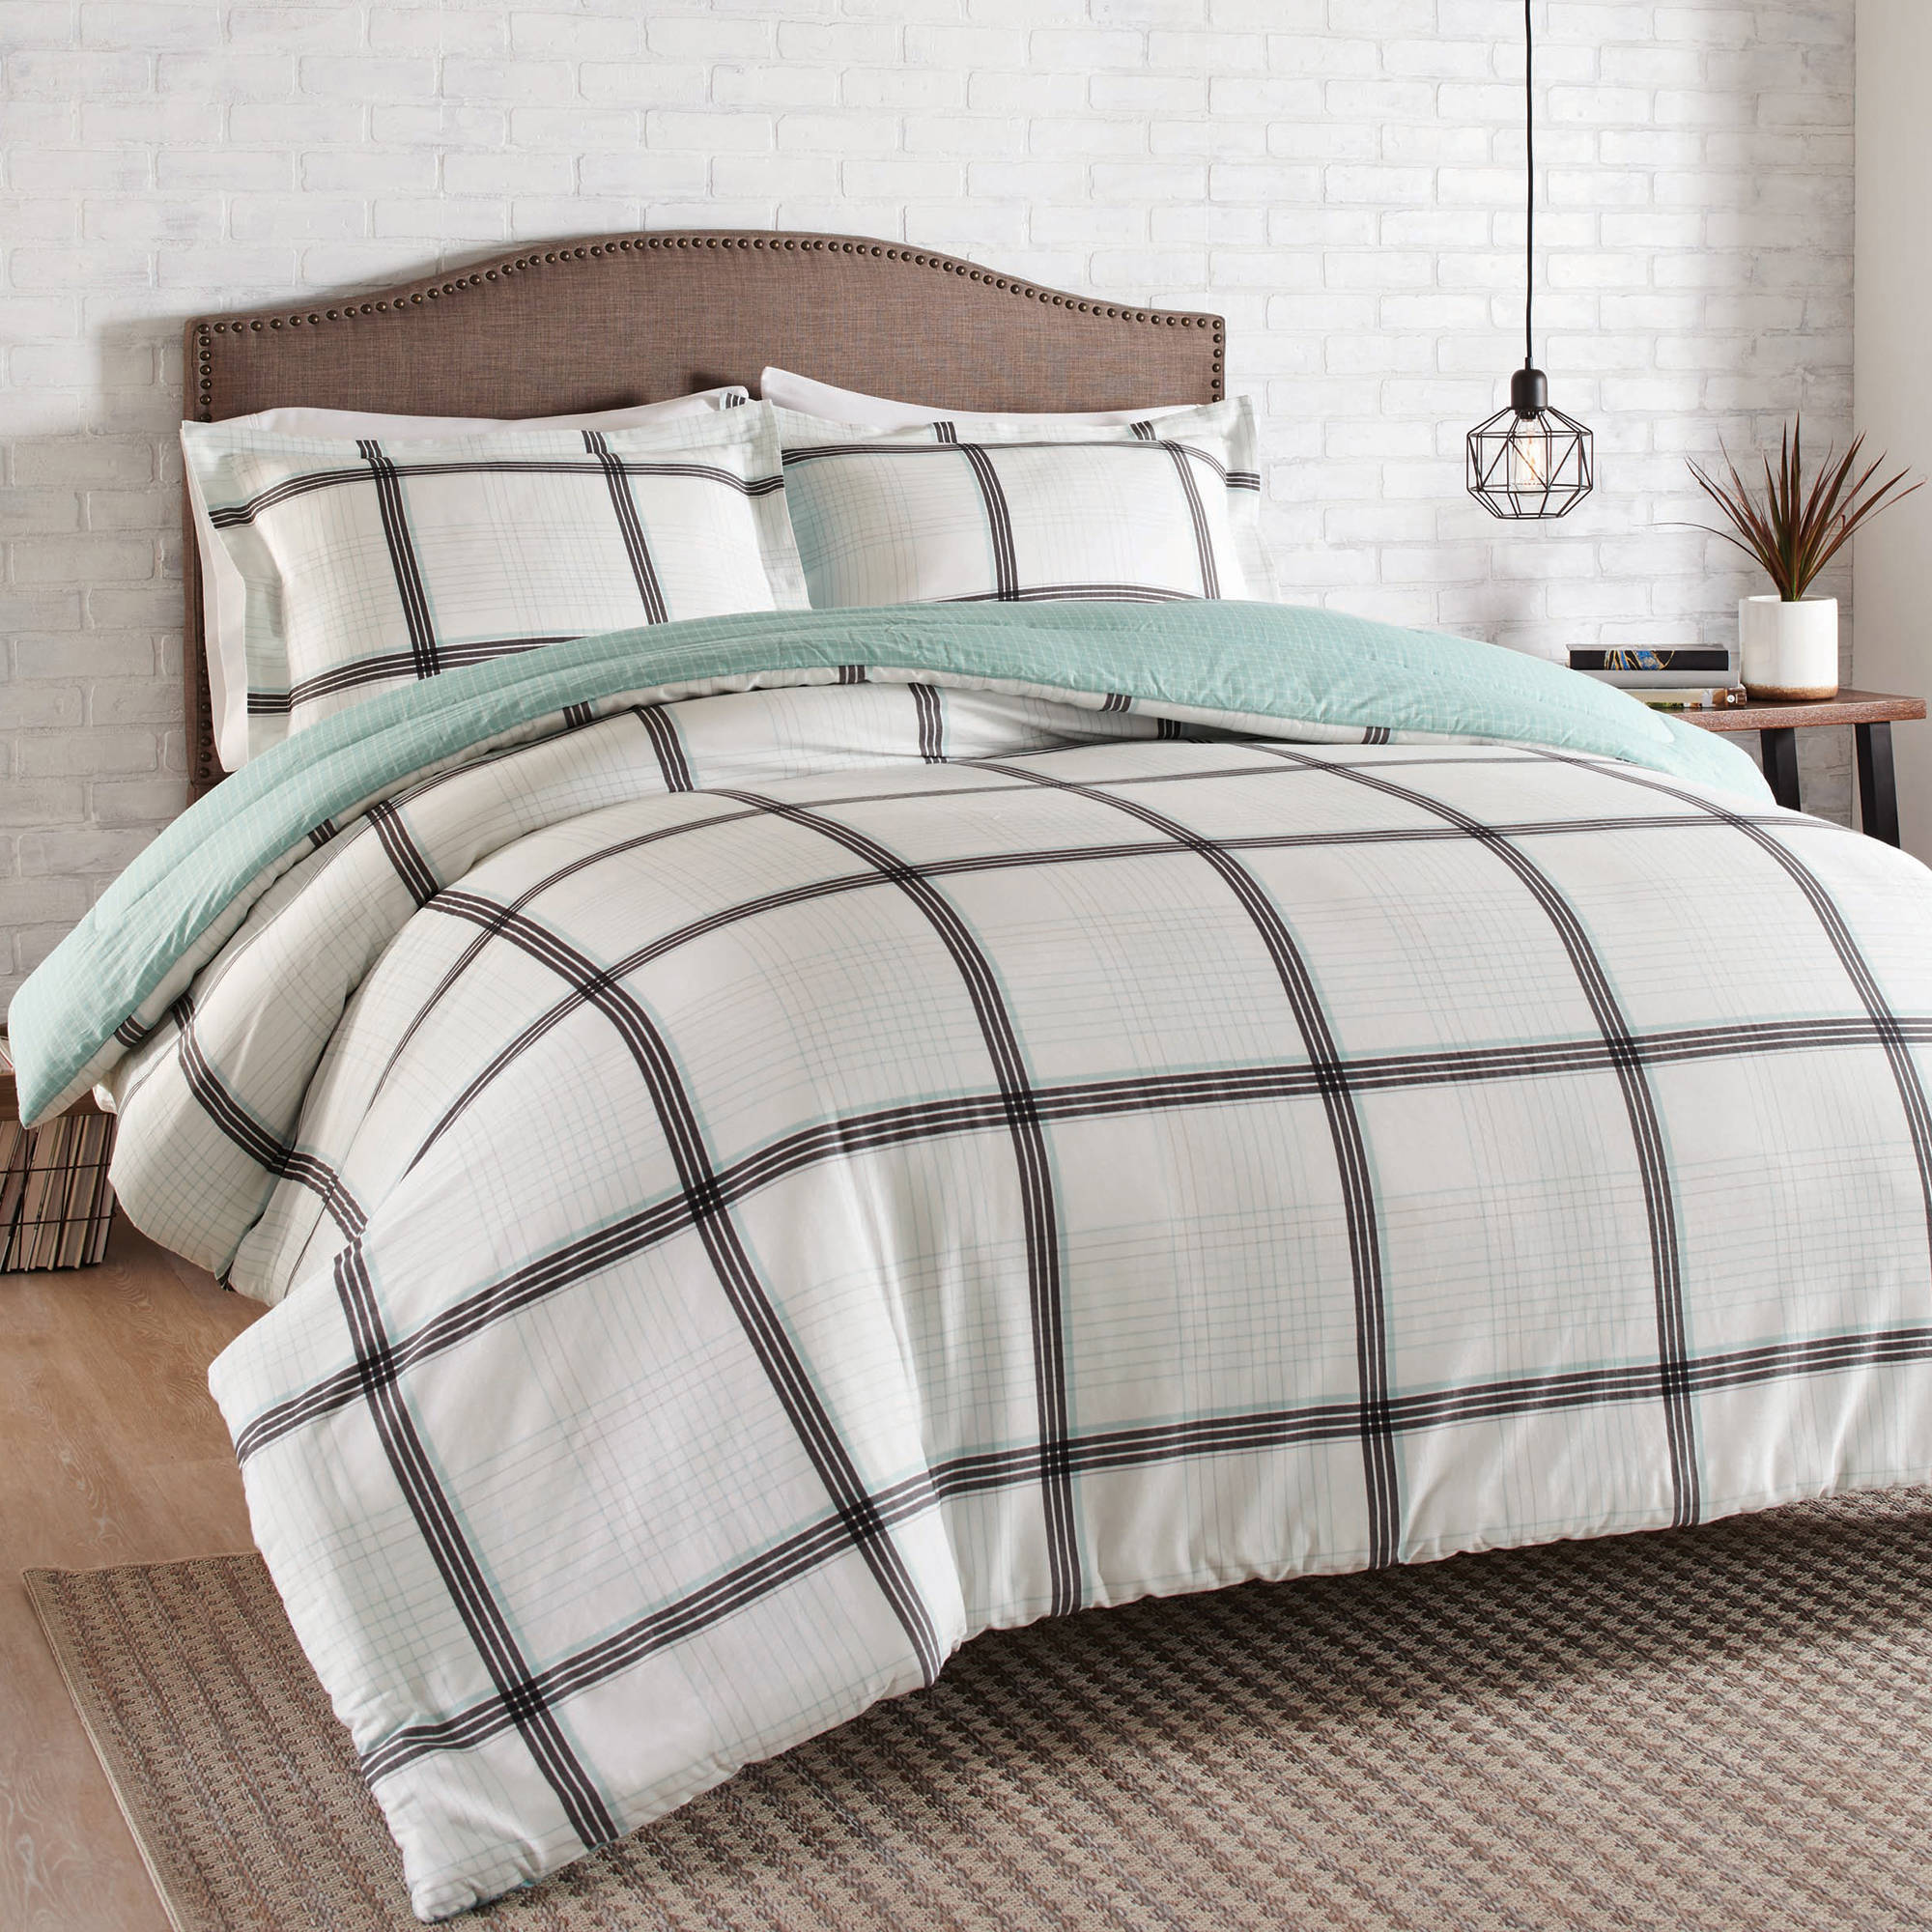 Better Homes and Gardens 3-Piece Modern Plaid Comforter Set by SUZHOU YUNKAI TEXTILE CO., LTD